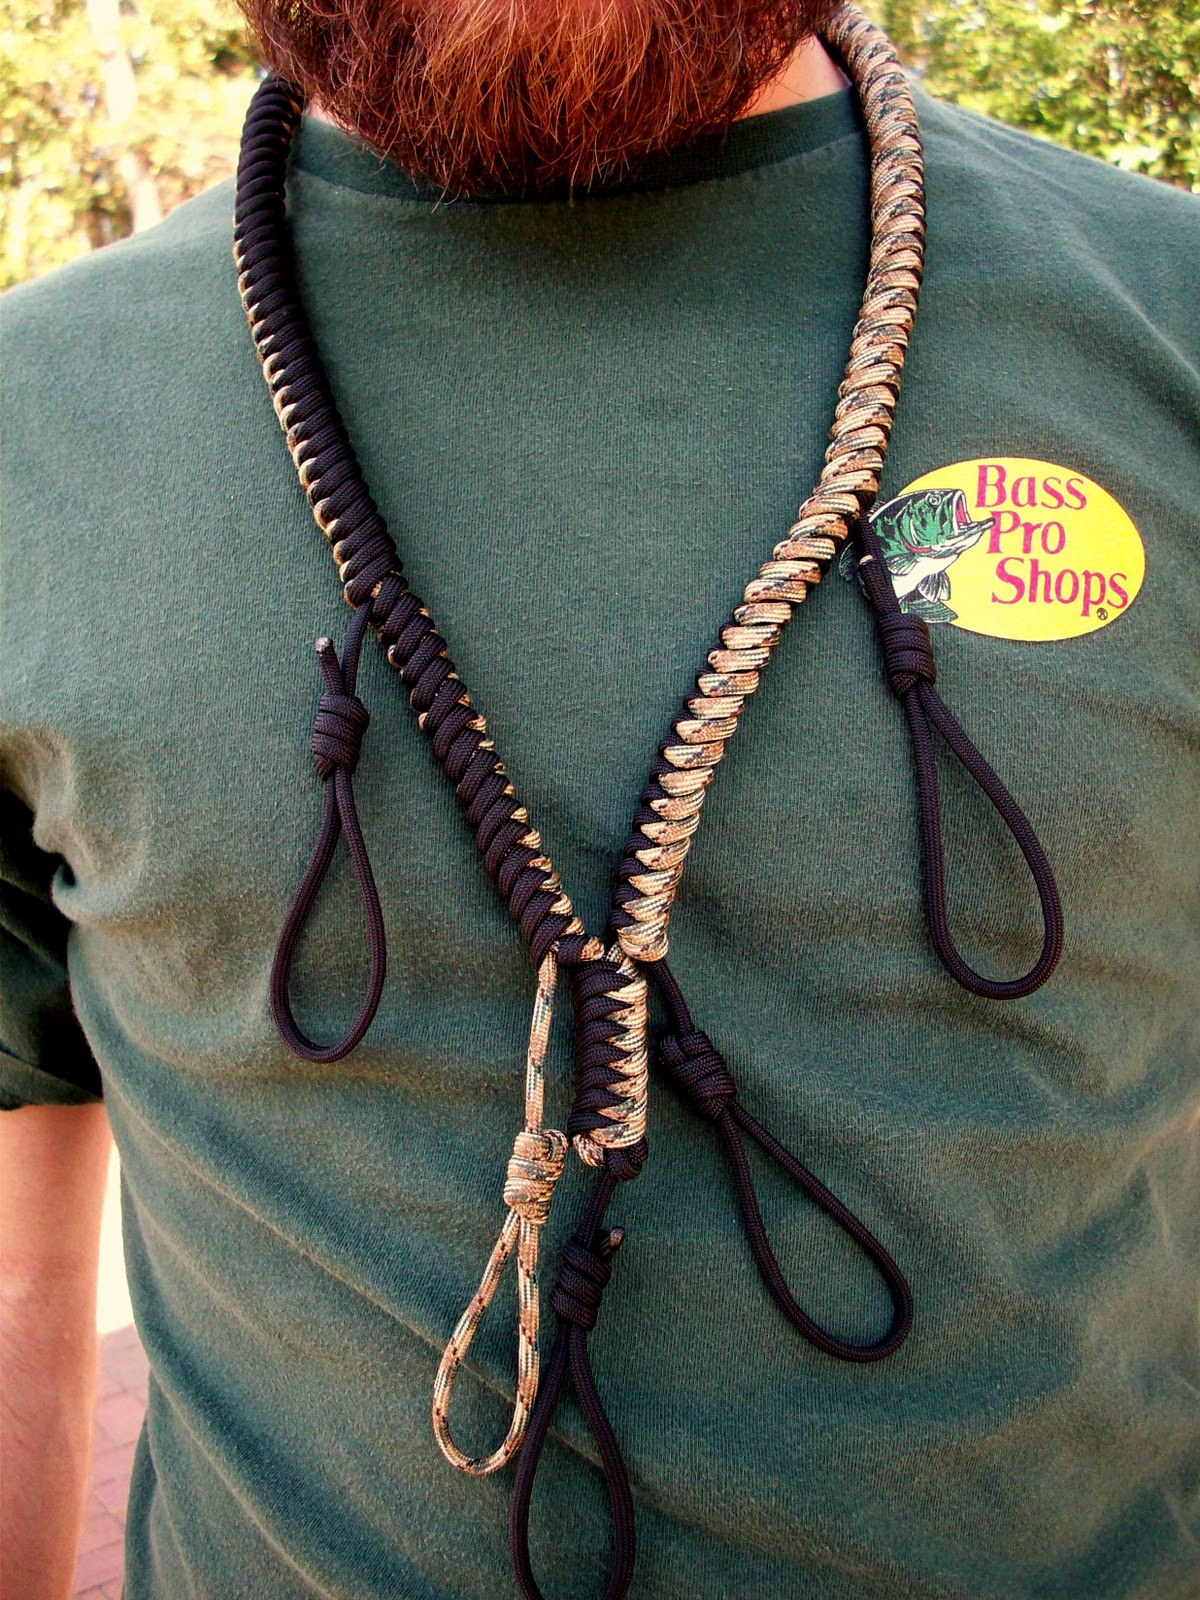 A Paracord Man Project First Para Cord Duck Call Lanyard